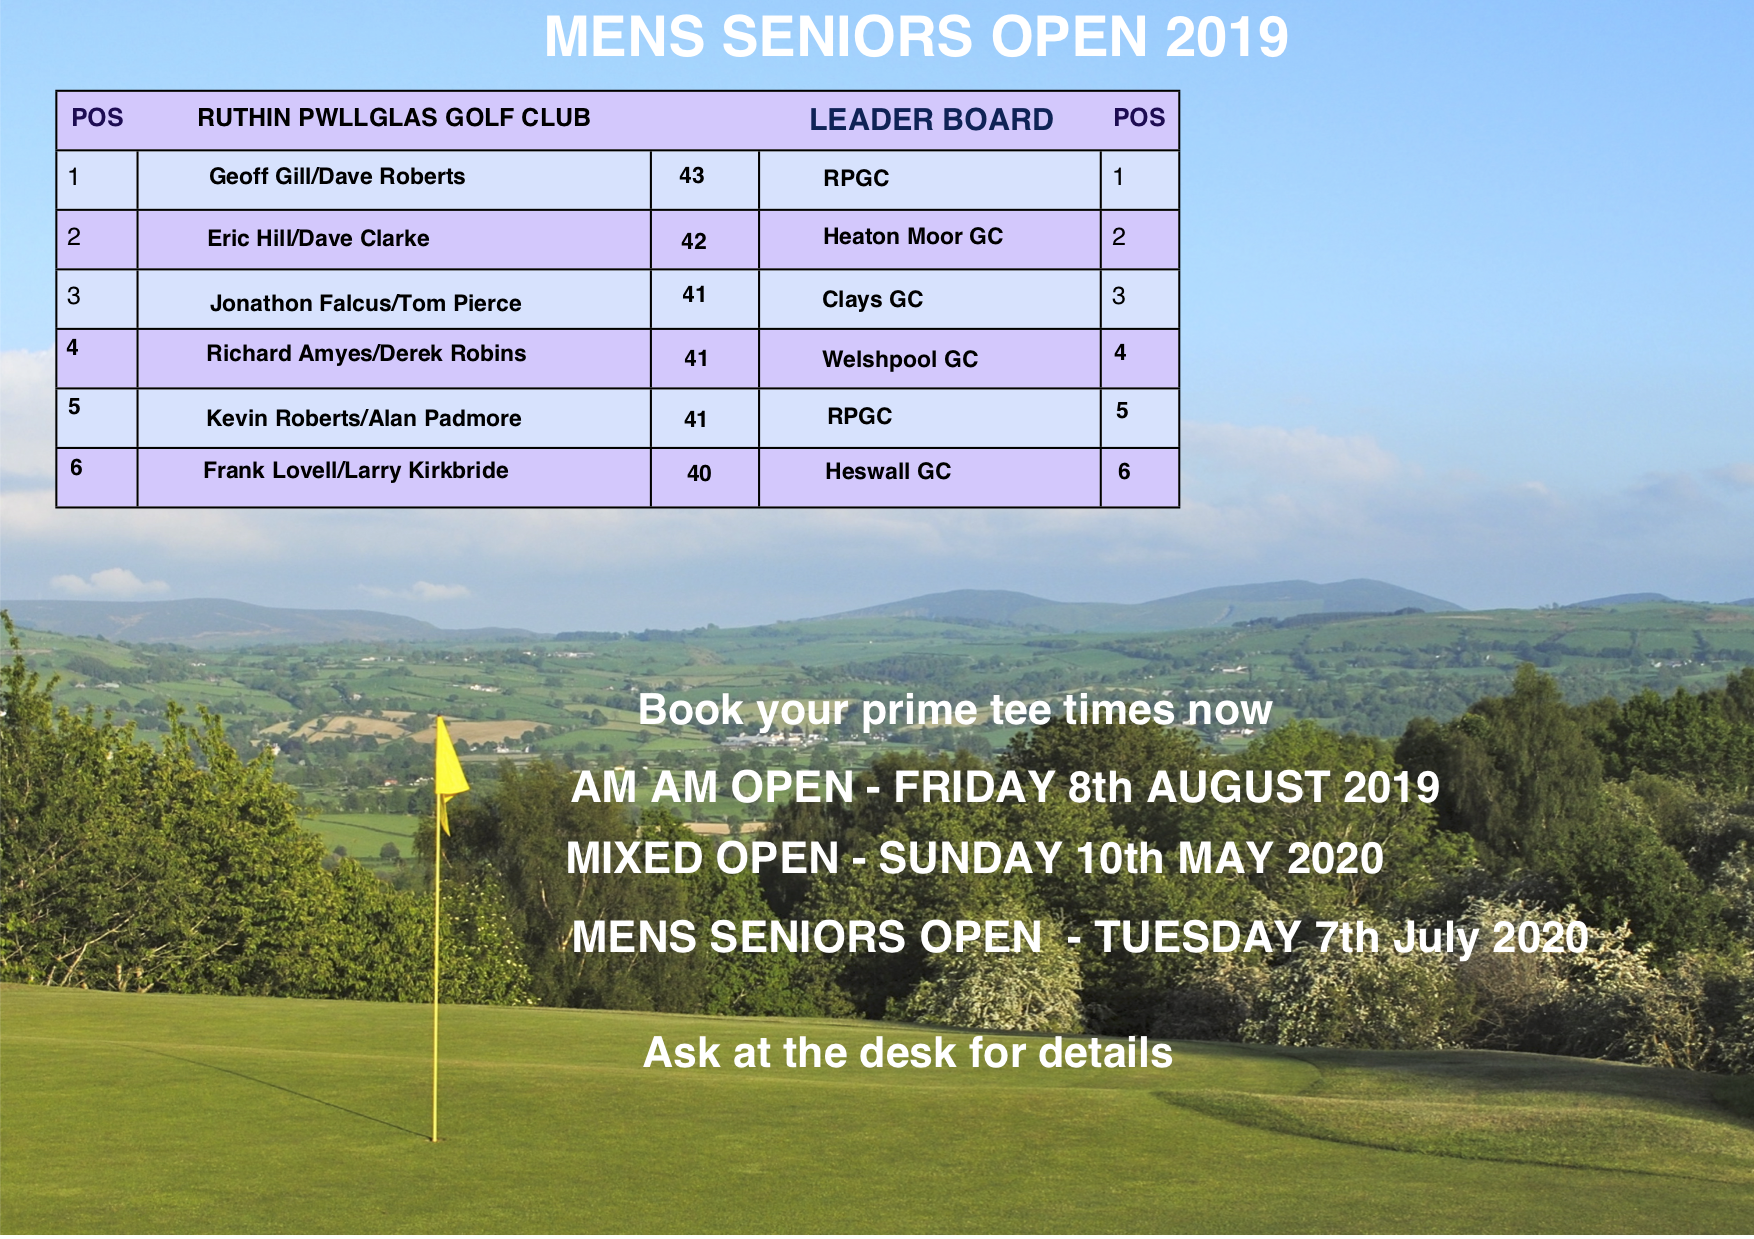 MENS SENIORS OPEN SCORE BOARD copy 1